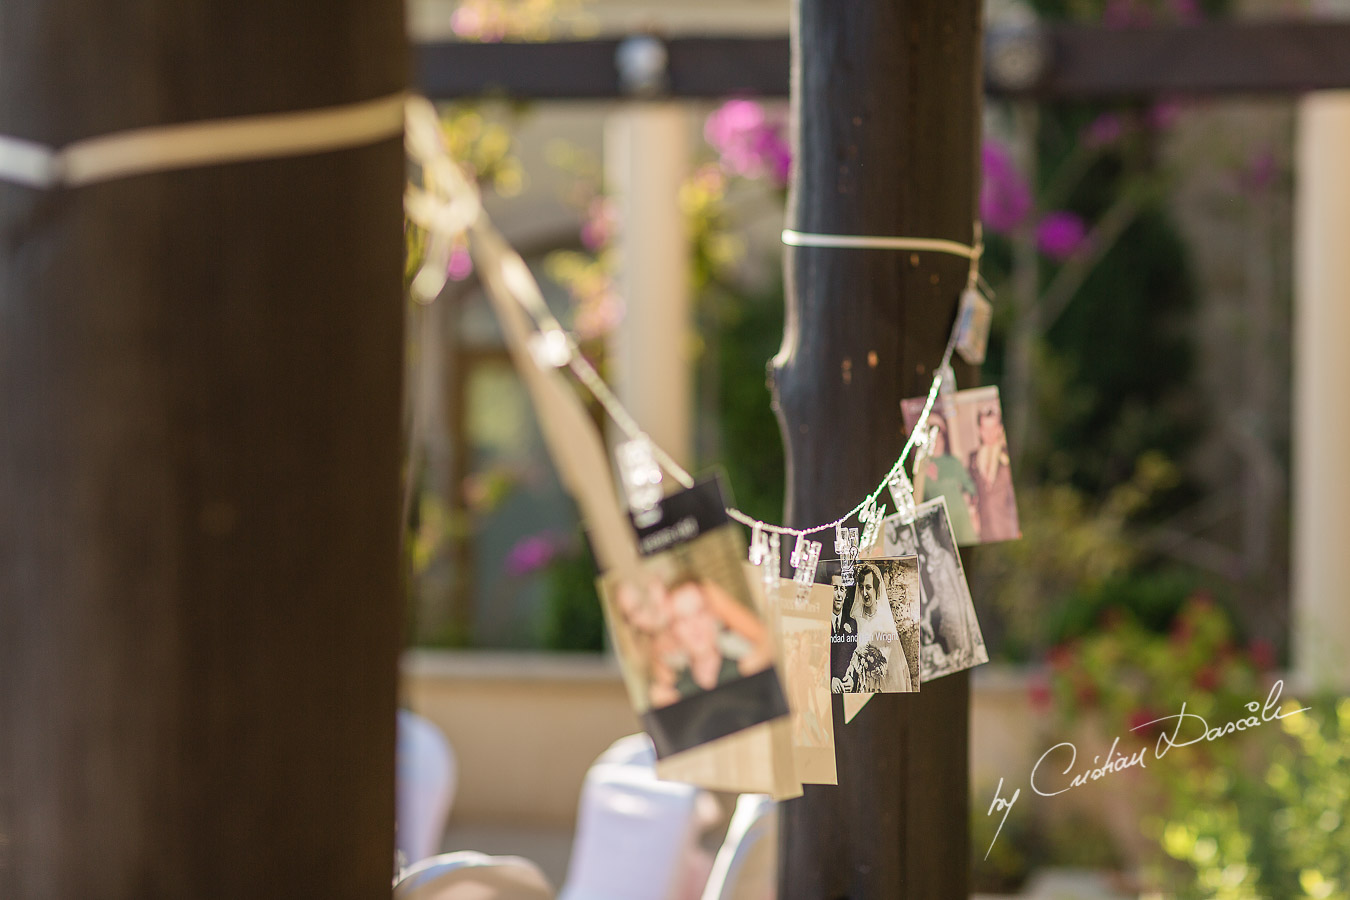 Simple yet beautiful wedding decorations captured by Cristian Dascalu at a wedding at The Aphrodite Hills Resort in Paphos, Cyprus.